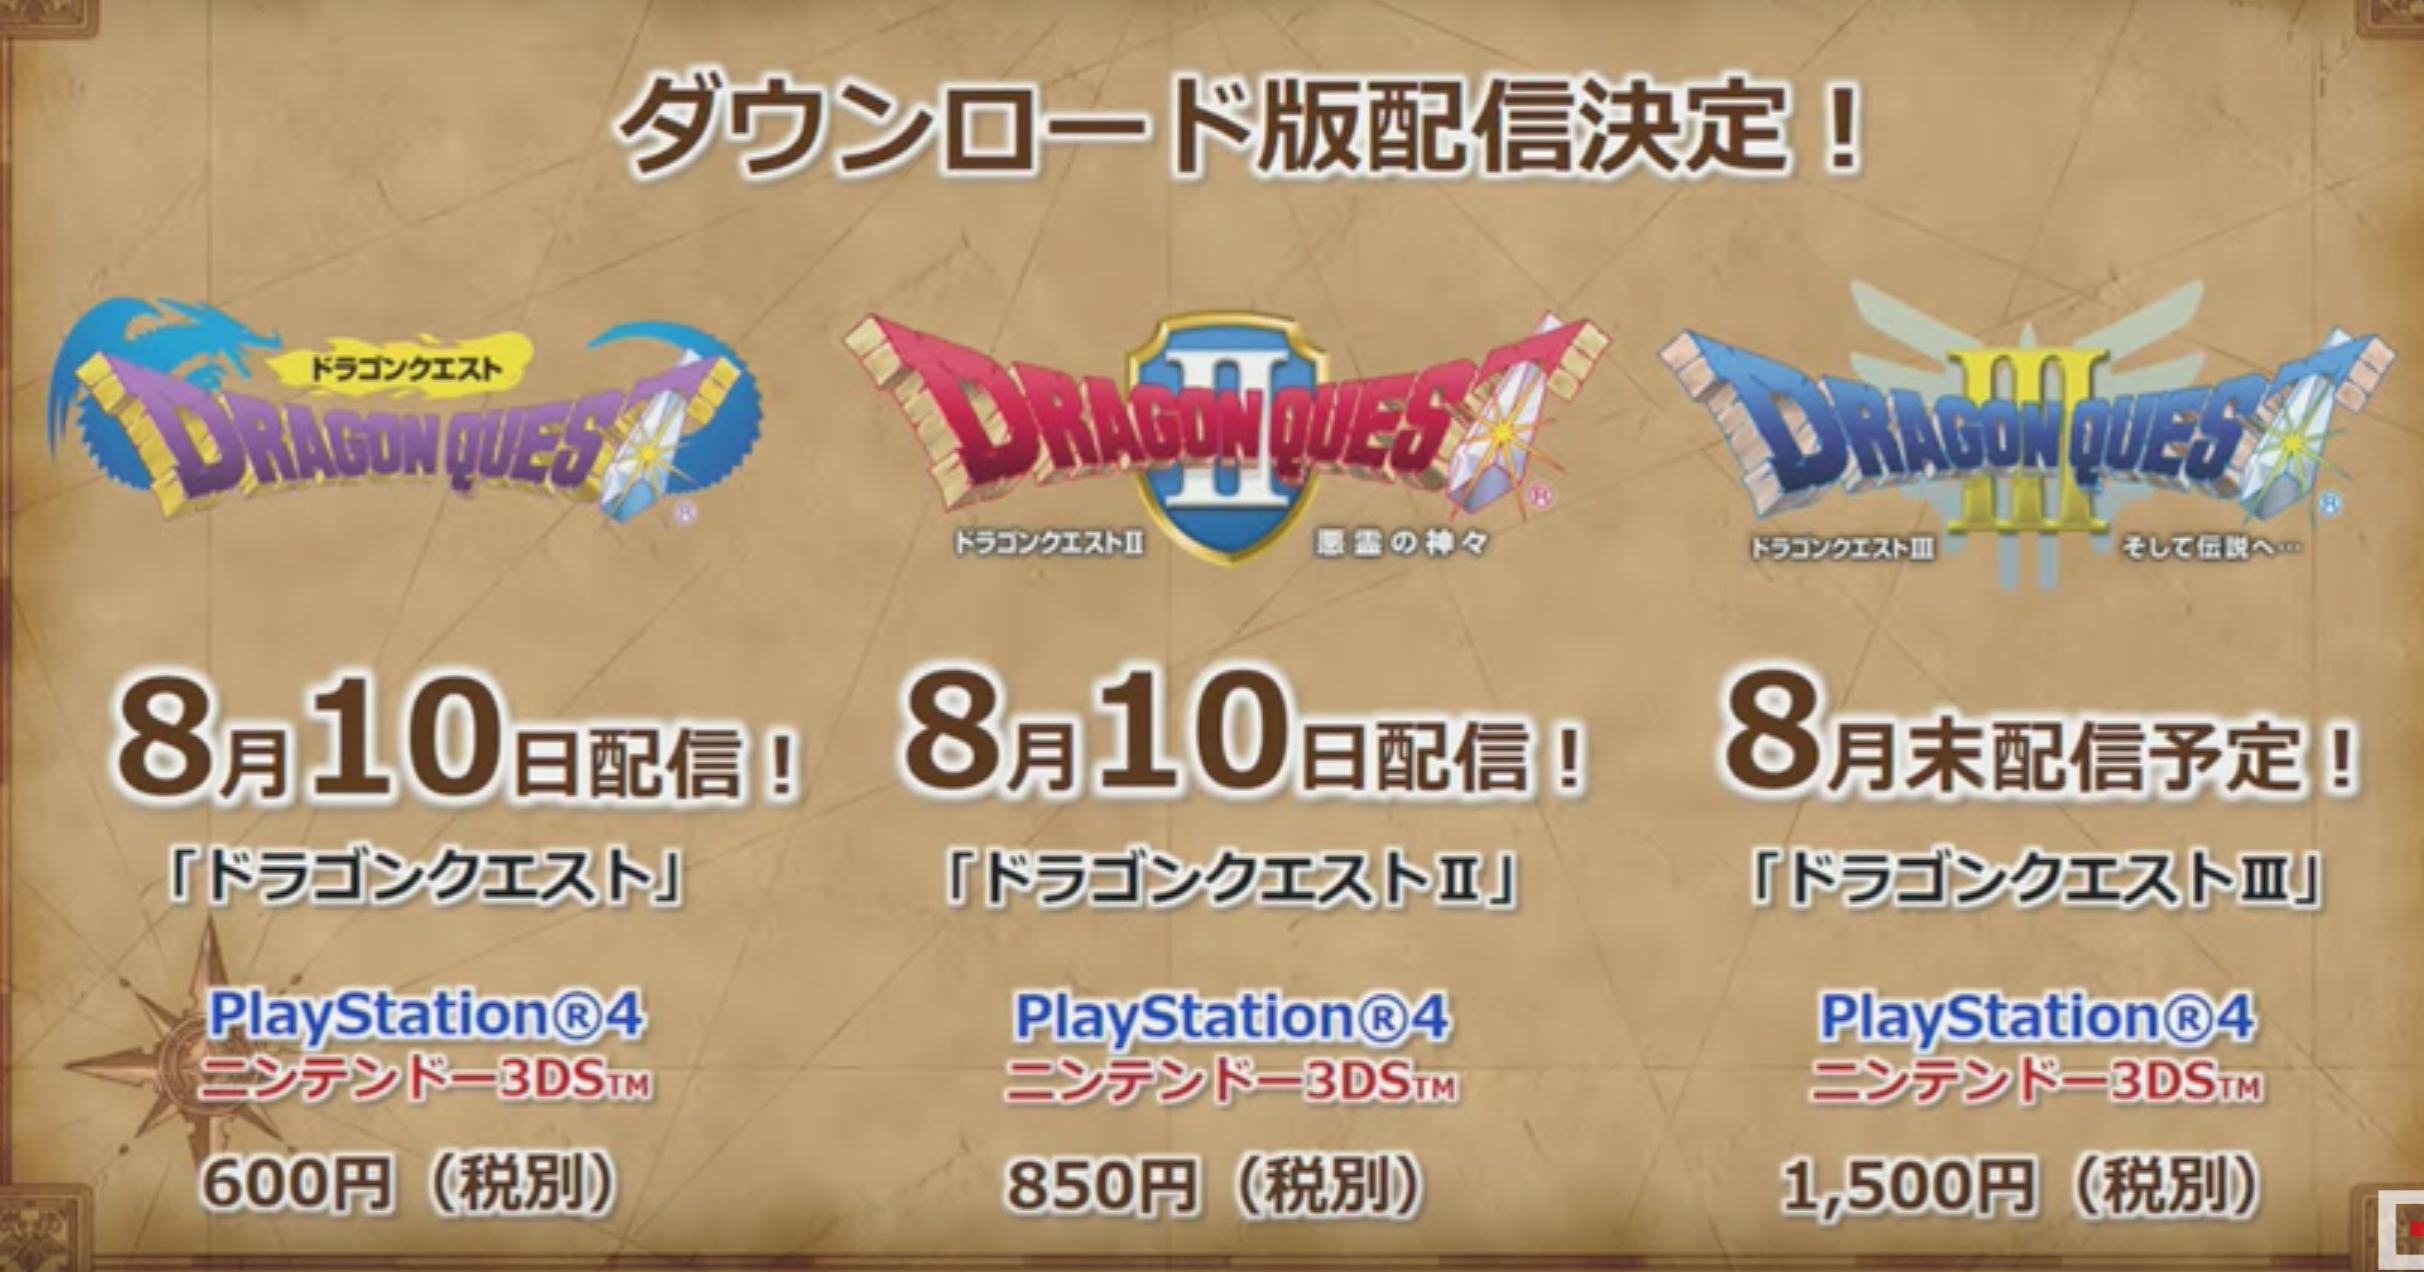 Dragon Quest 1, 2 e 3 annunciato per 3DS e Playstation 4